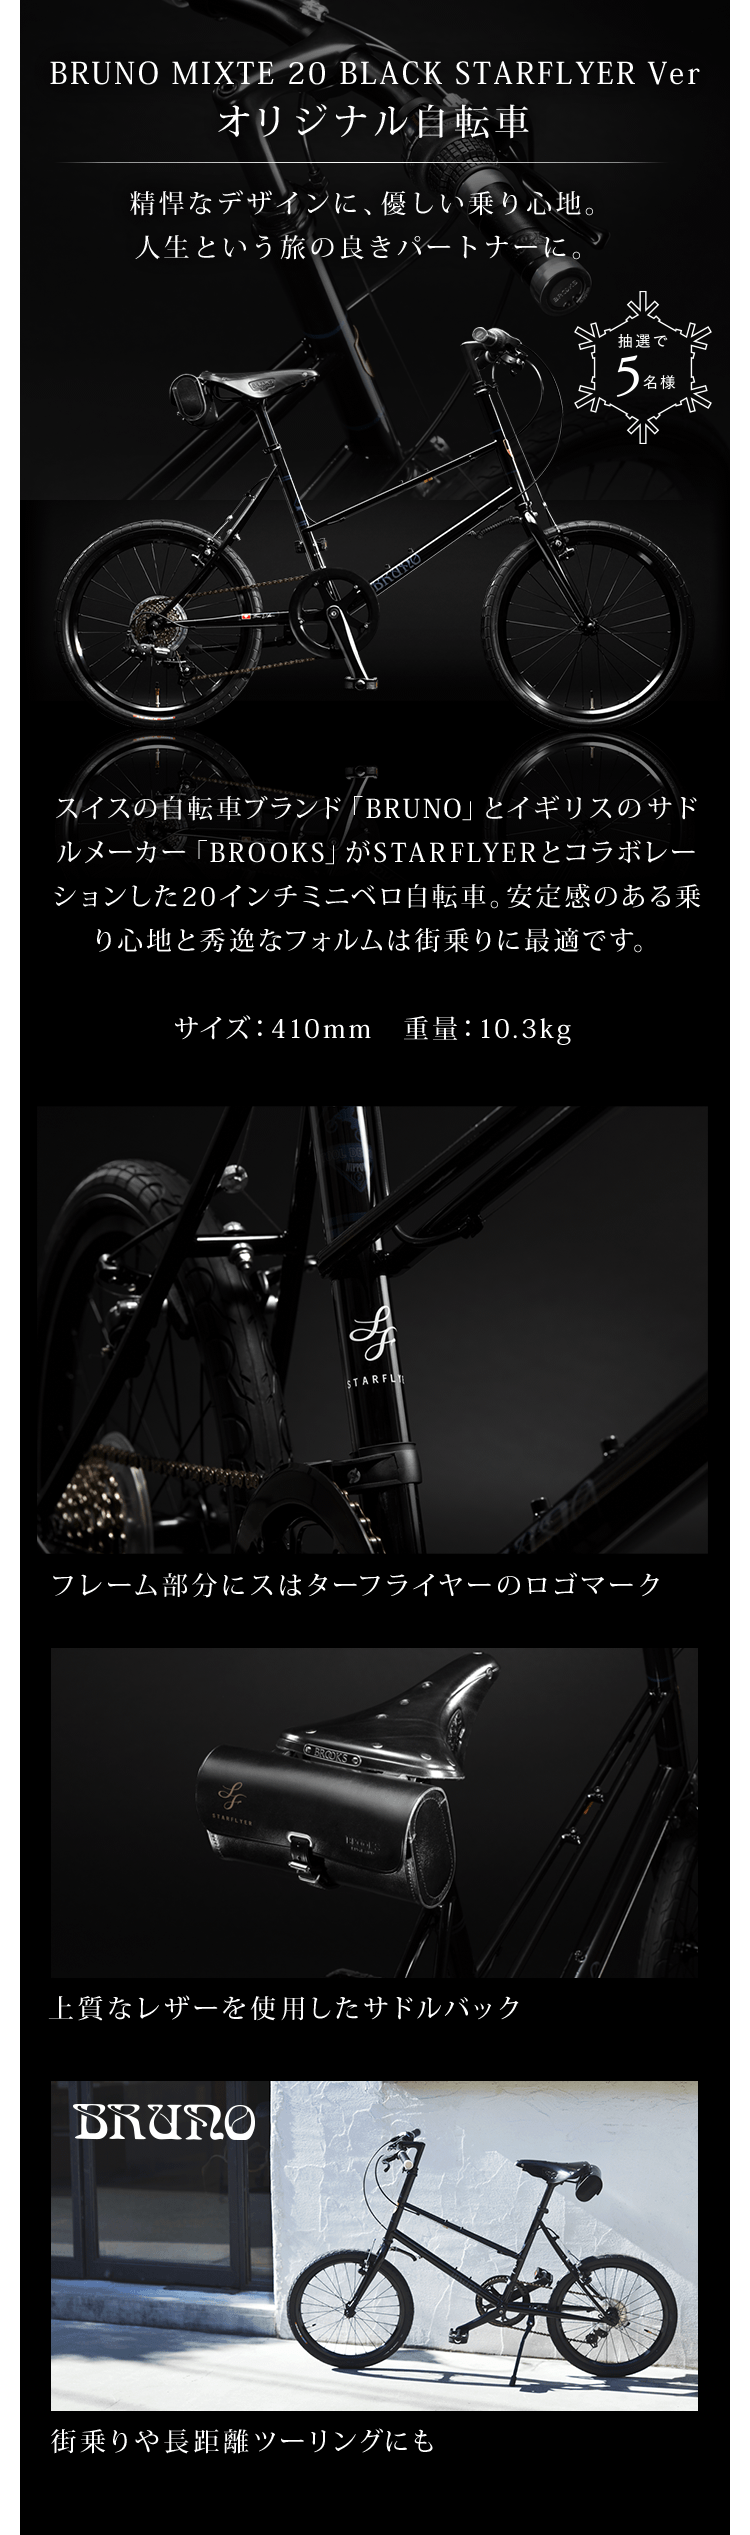 BRUNO MIXTE 20 BLACK STARFLYER Ver オリジナル自転車